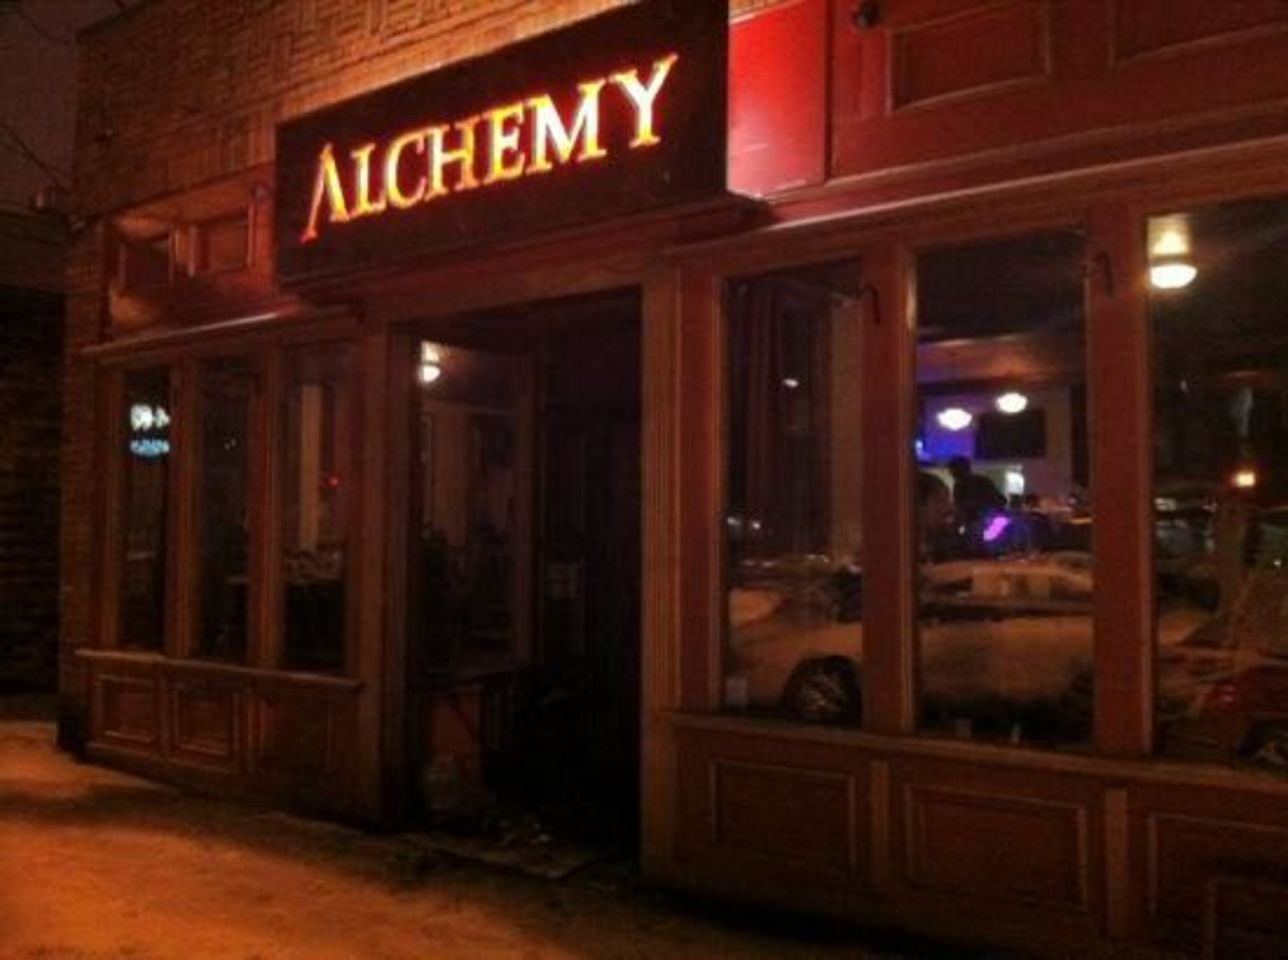 A photo of Alchemy